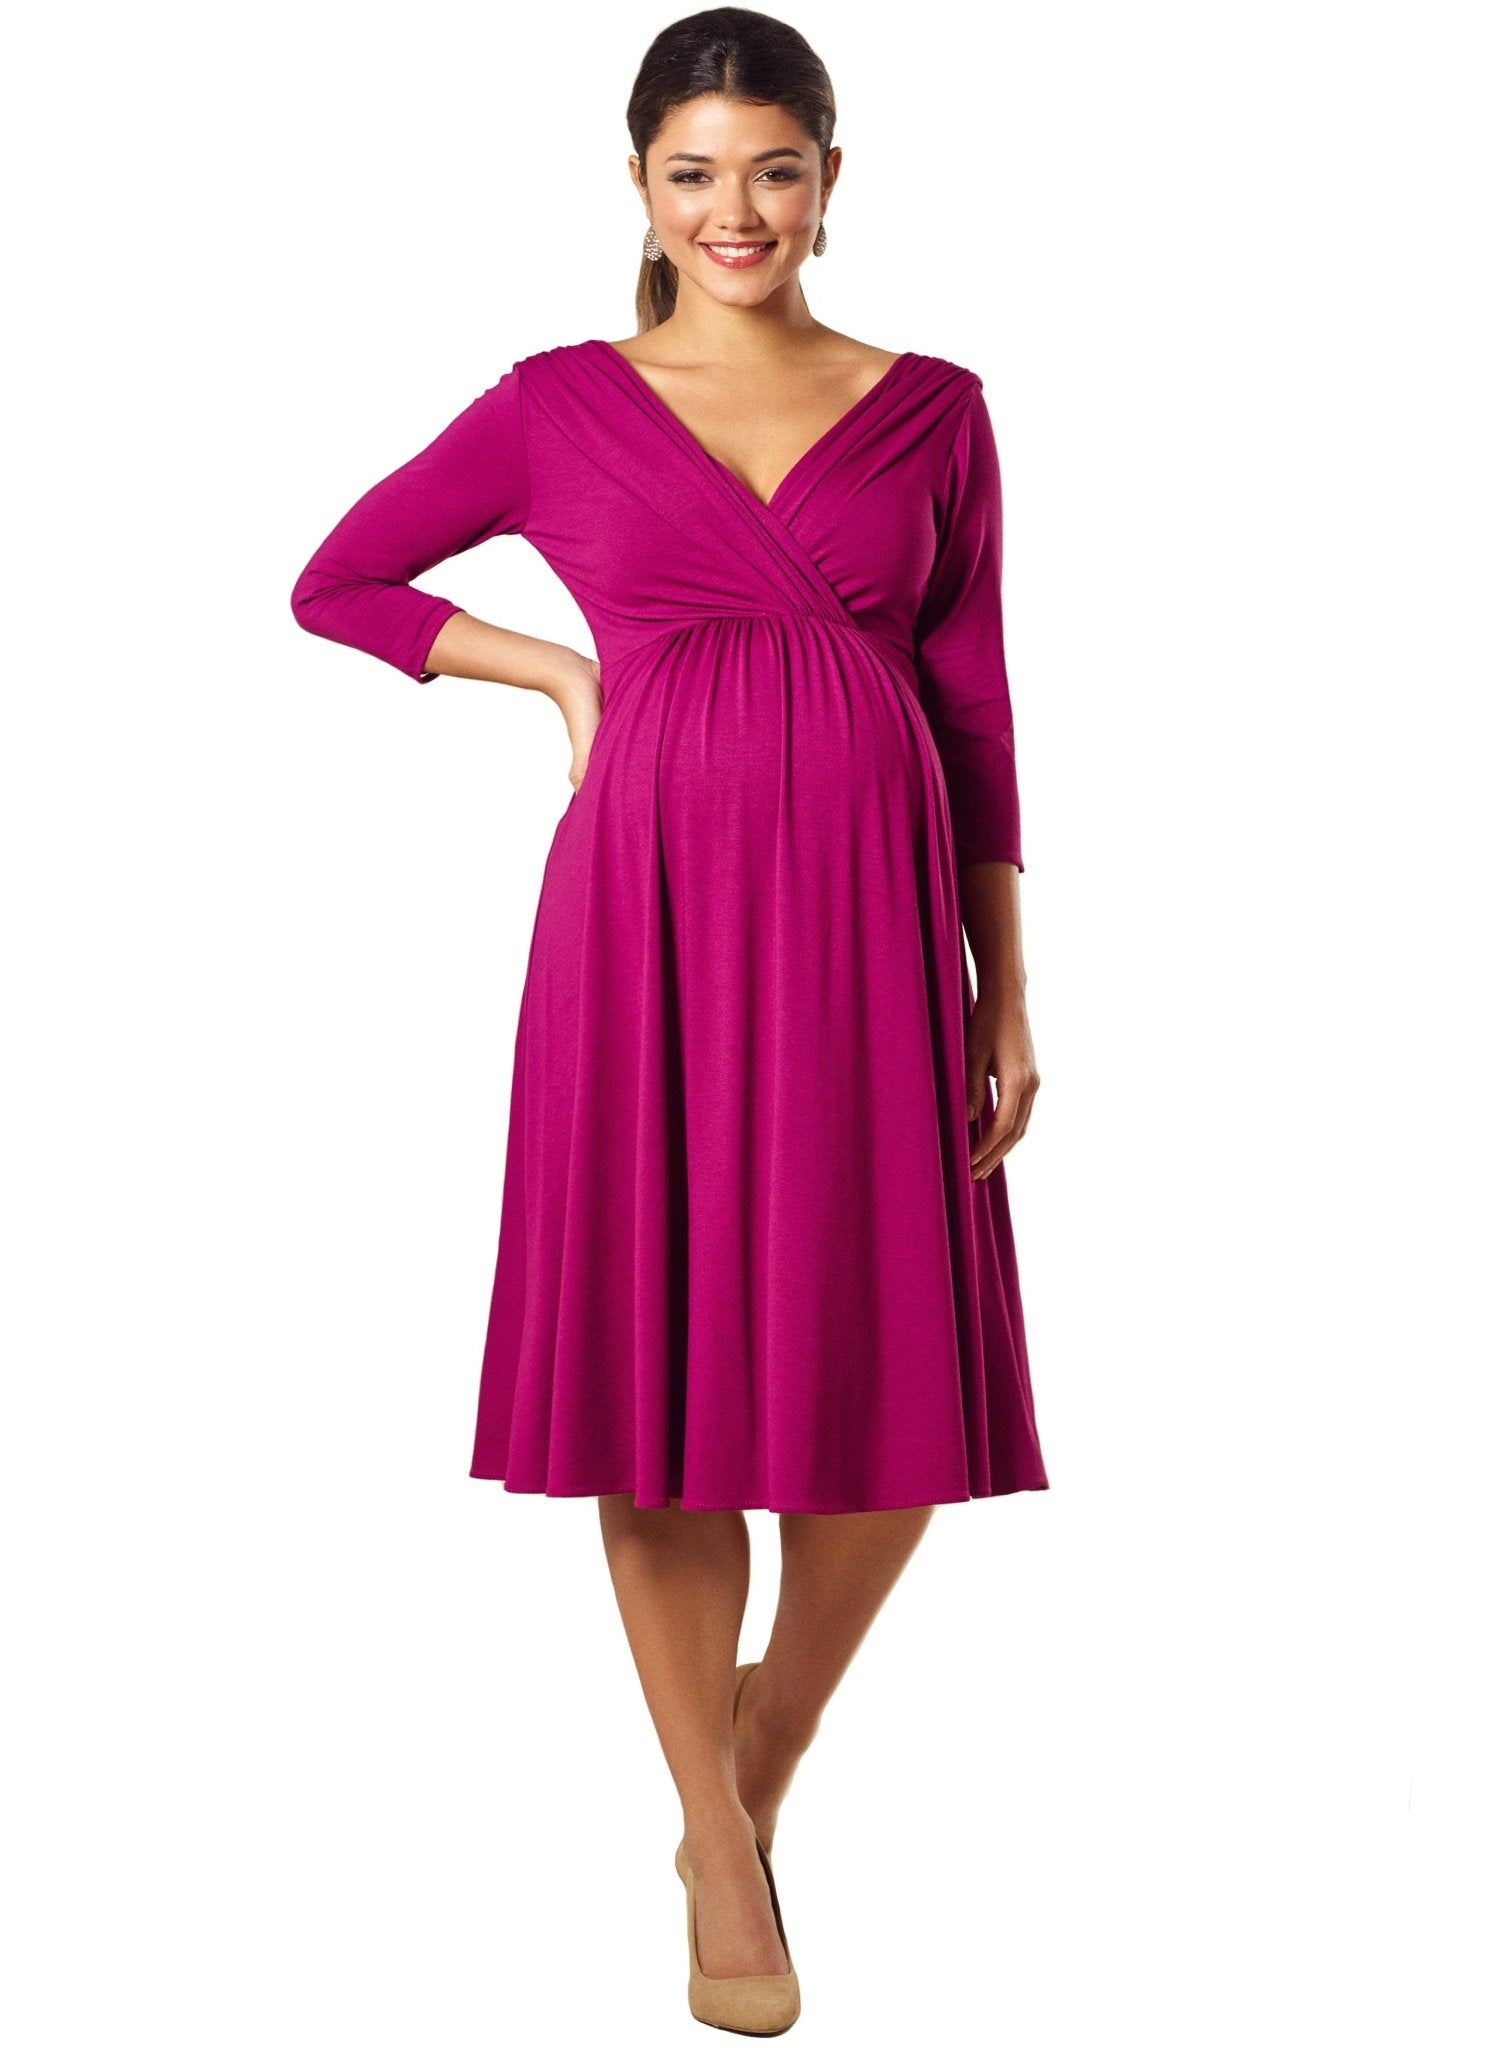 Willow Maternity Dress - Pink - Mums and Bumps